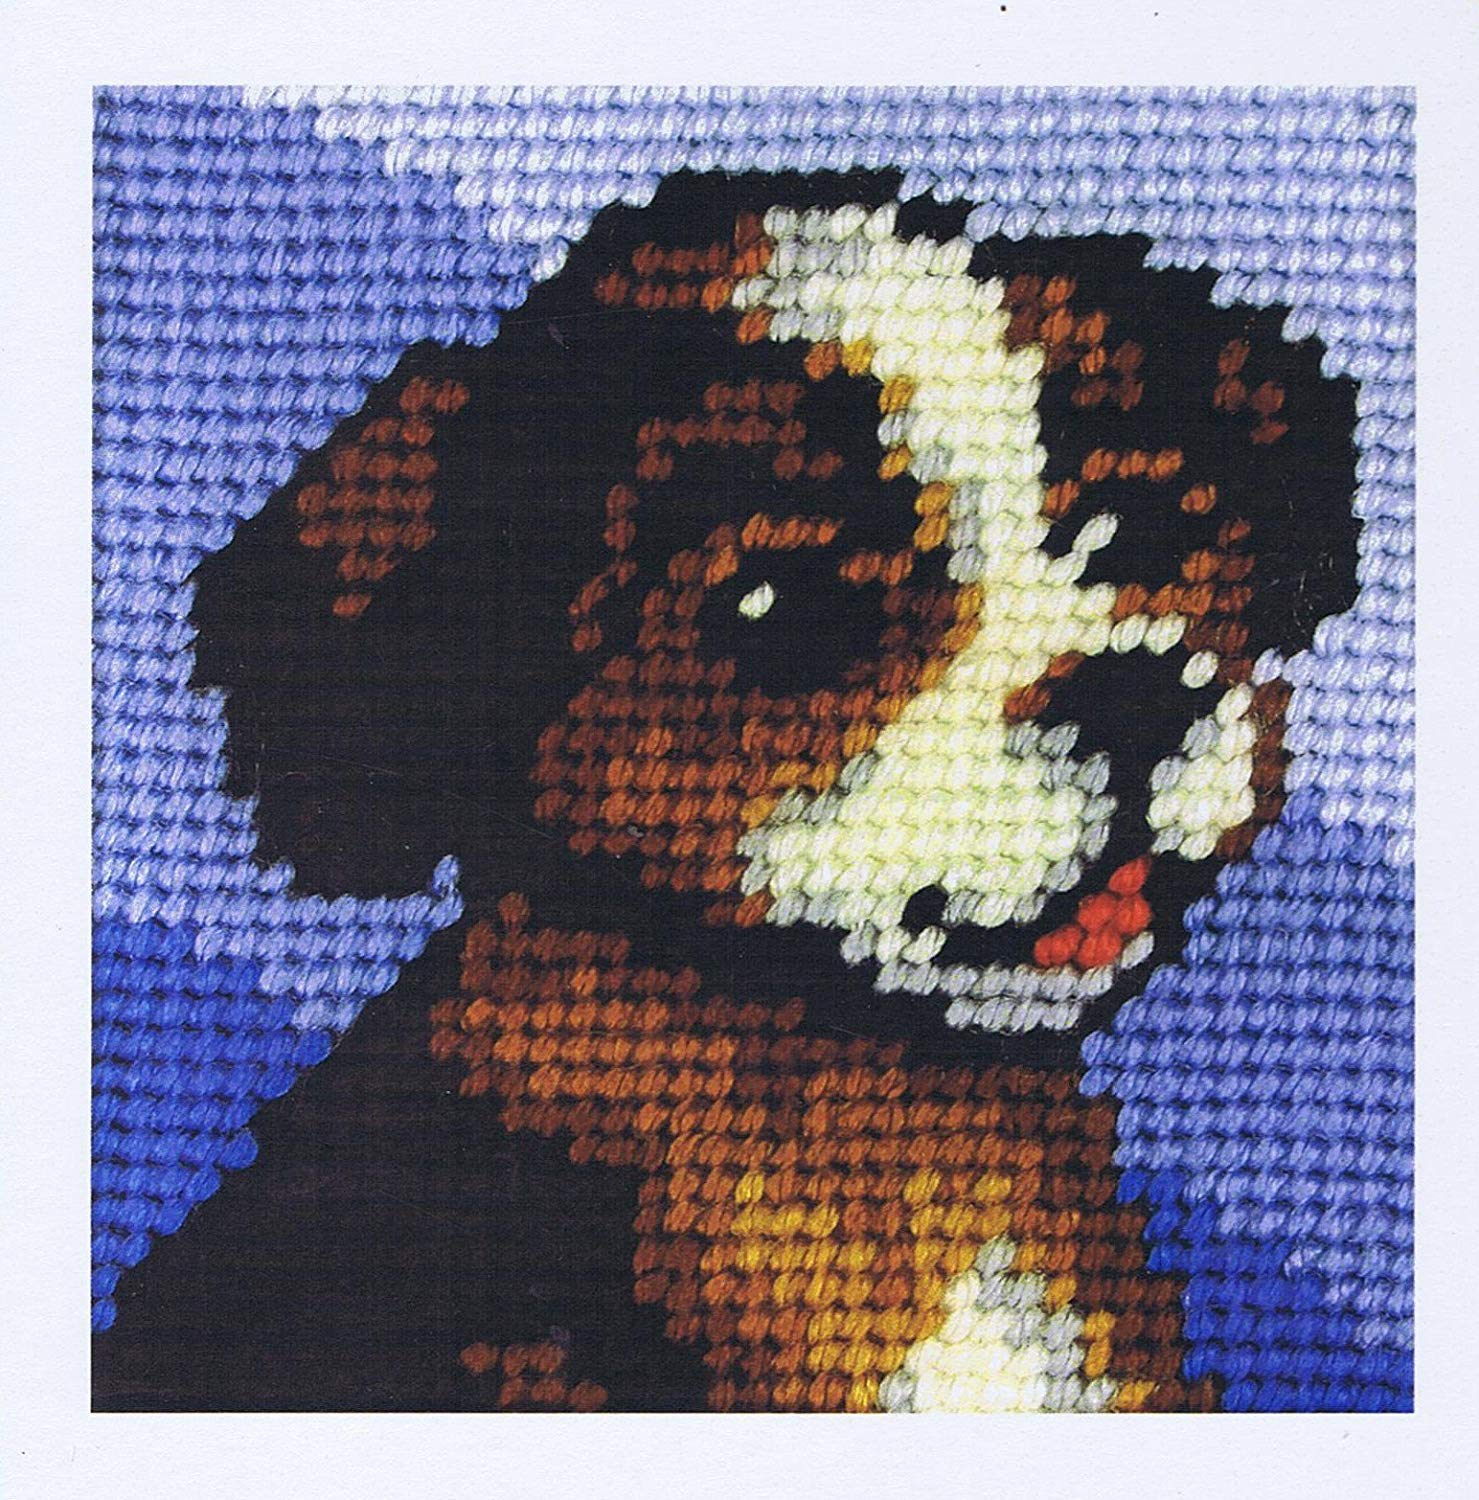 Brown Puppy  - My First Embroidery Kit - 16x16cm approx